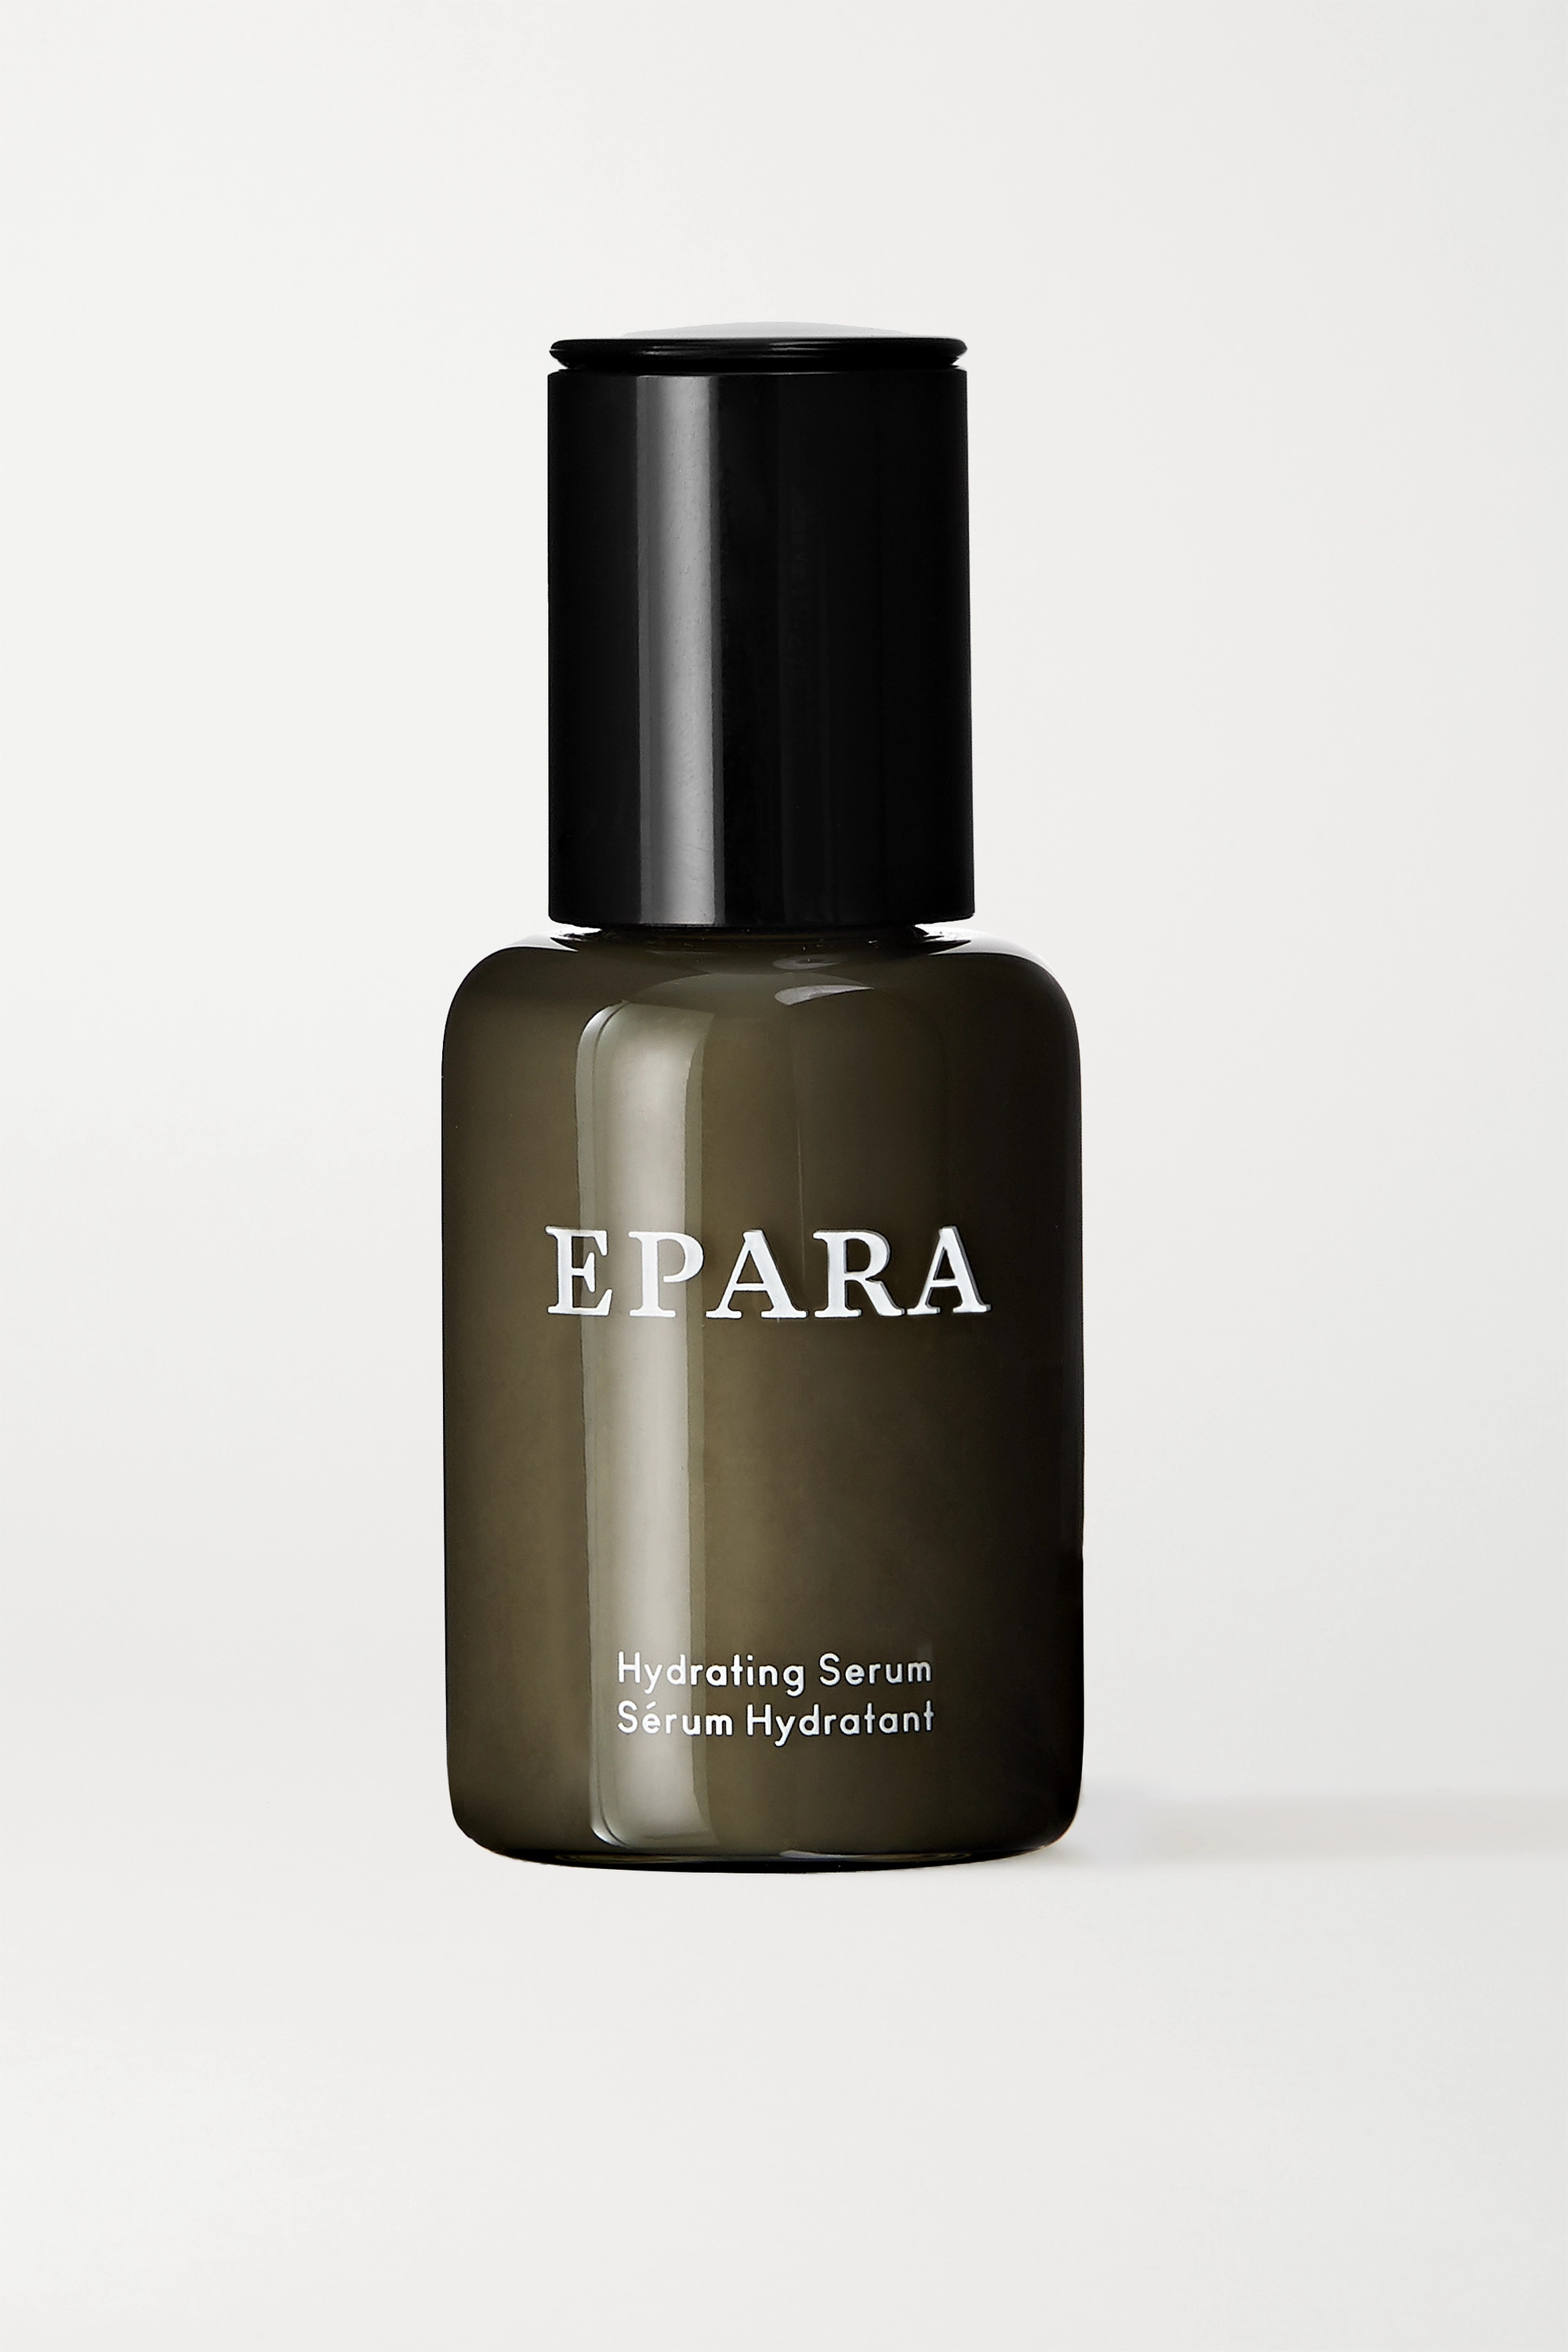 Epara Sérum hydratant, 30 ml